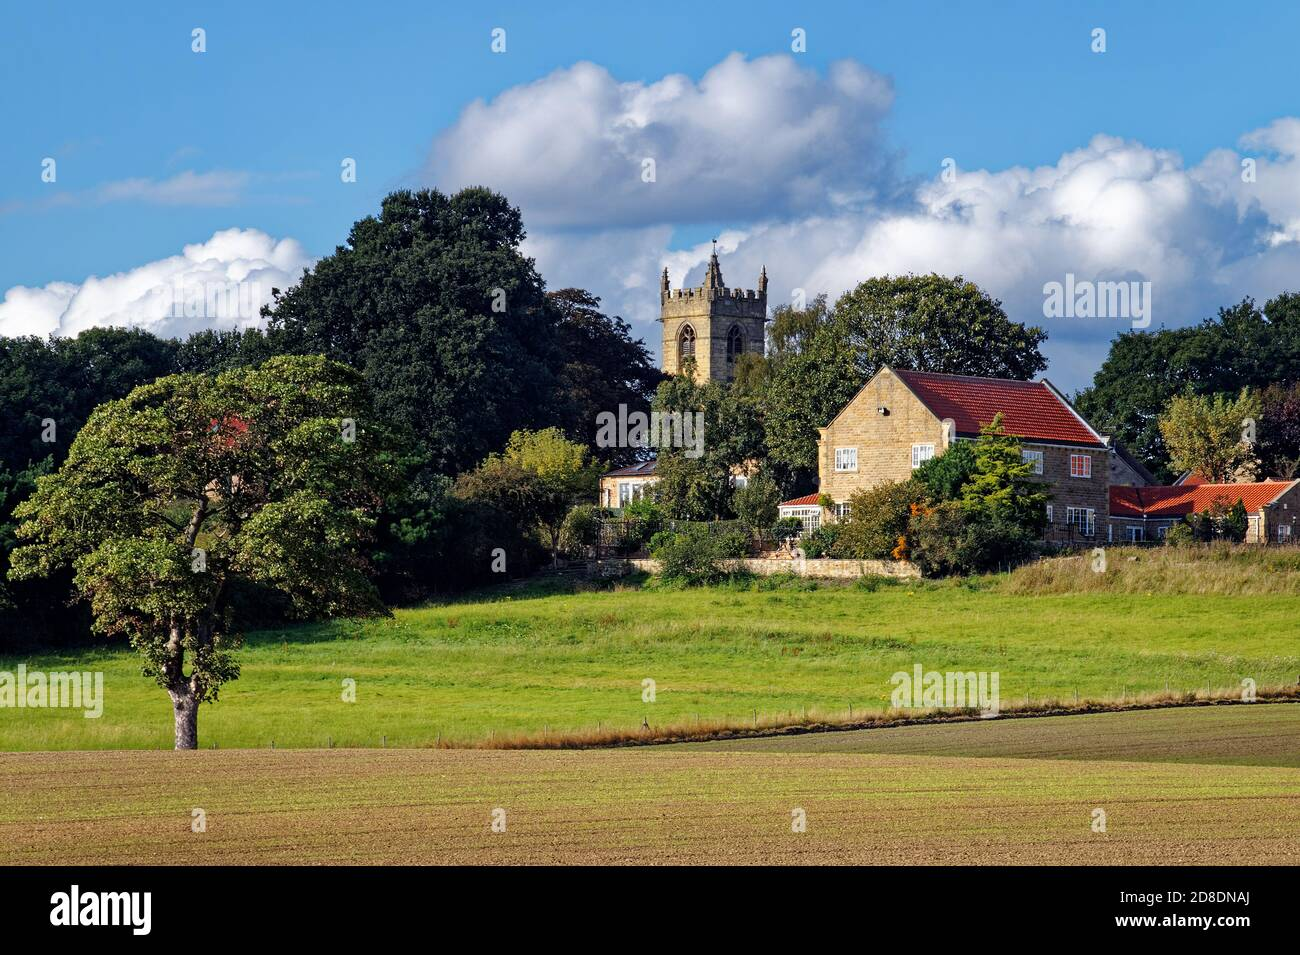 UK,South Yorkshire,Barnburgh,St Peter's Church and surrounding countryside Stock Photo